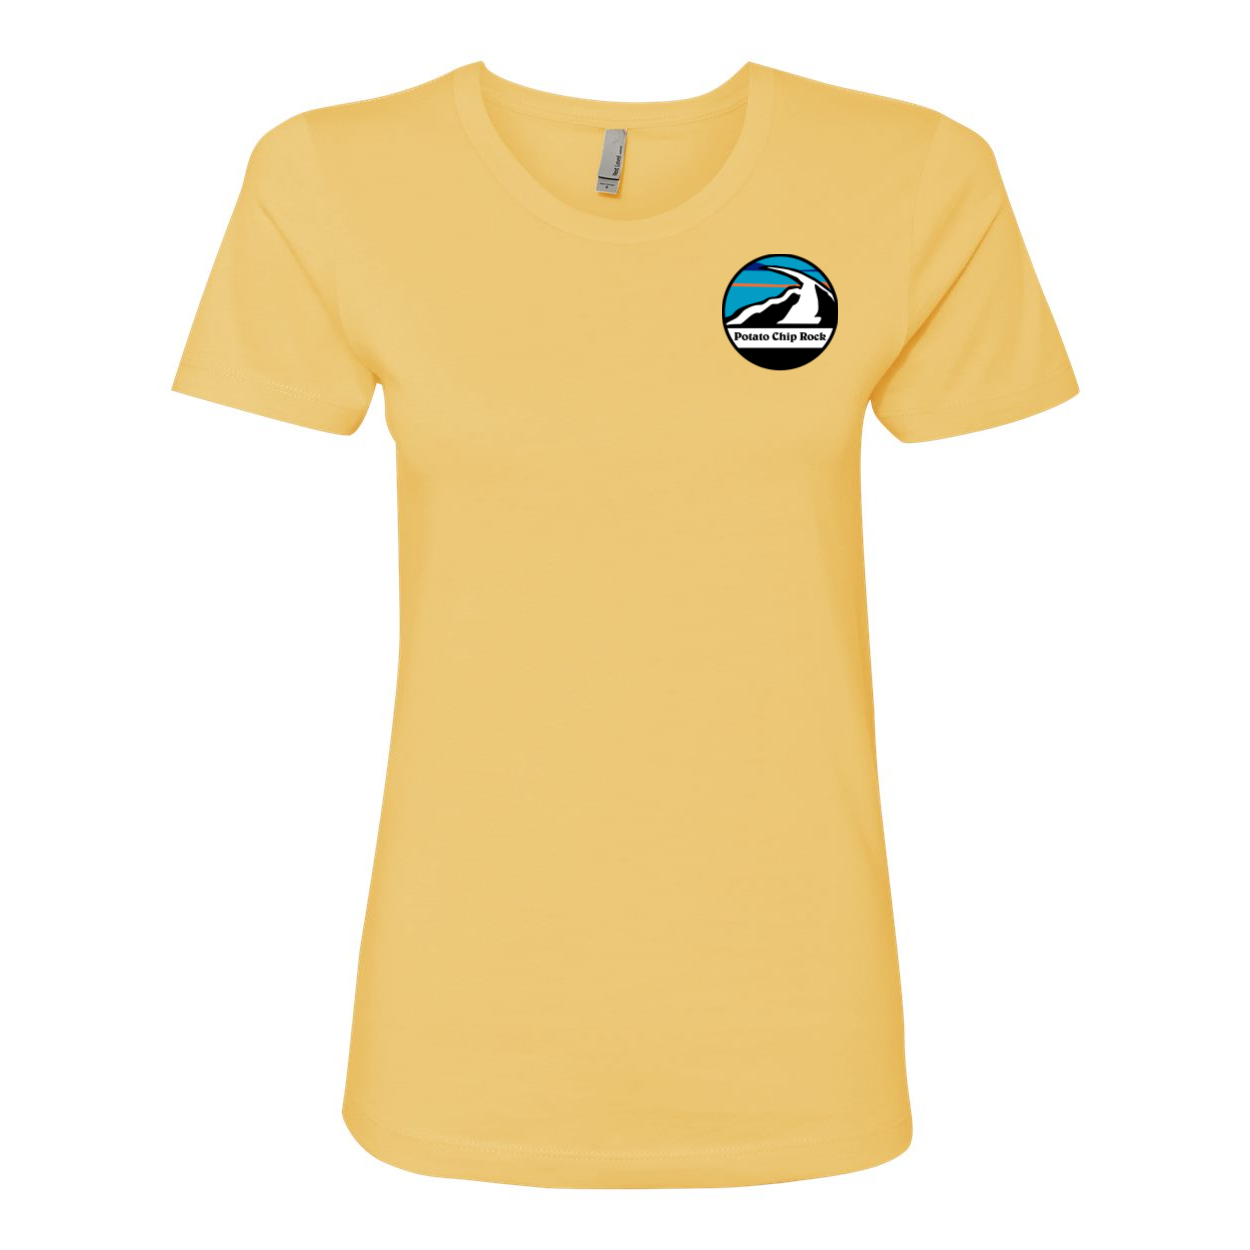 Potato Chip Rock - T-Shirt (Women's)